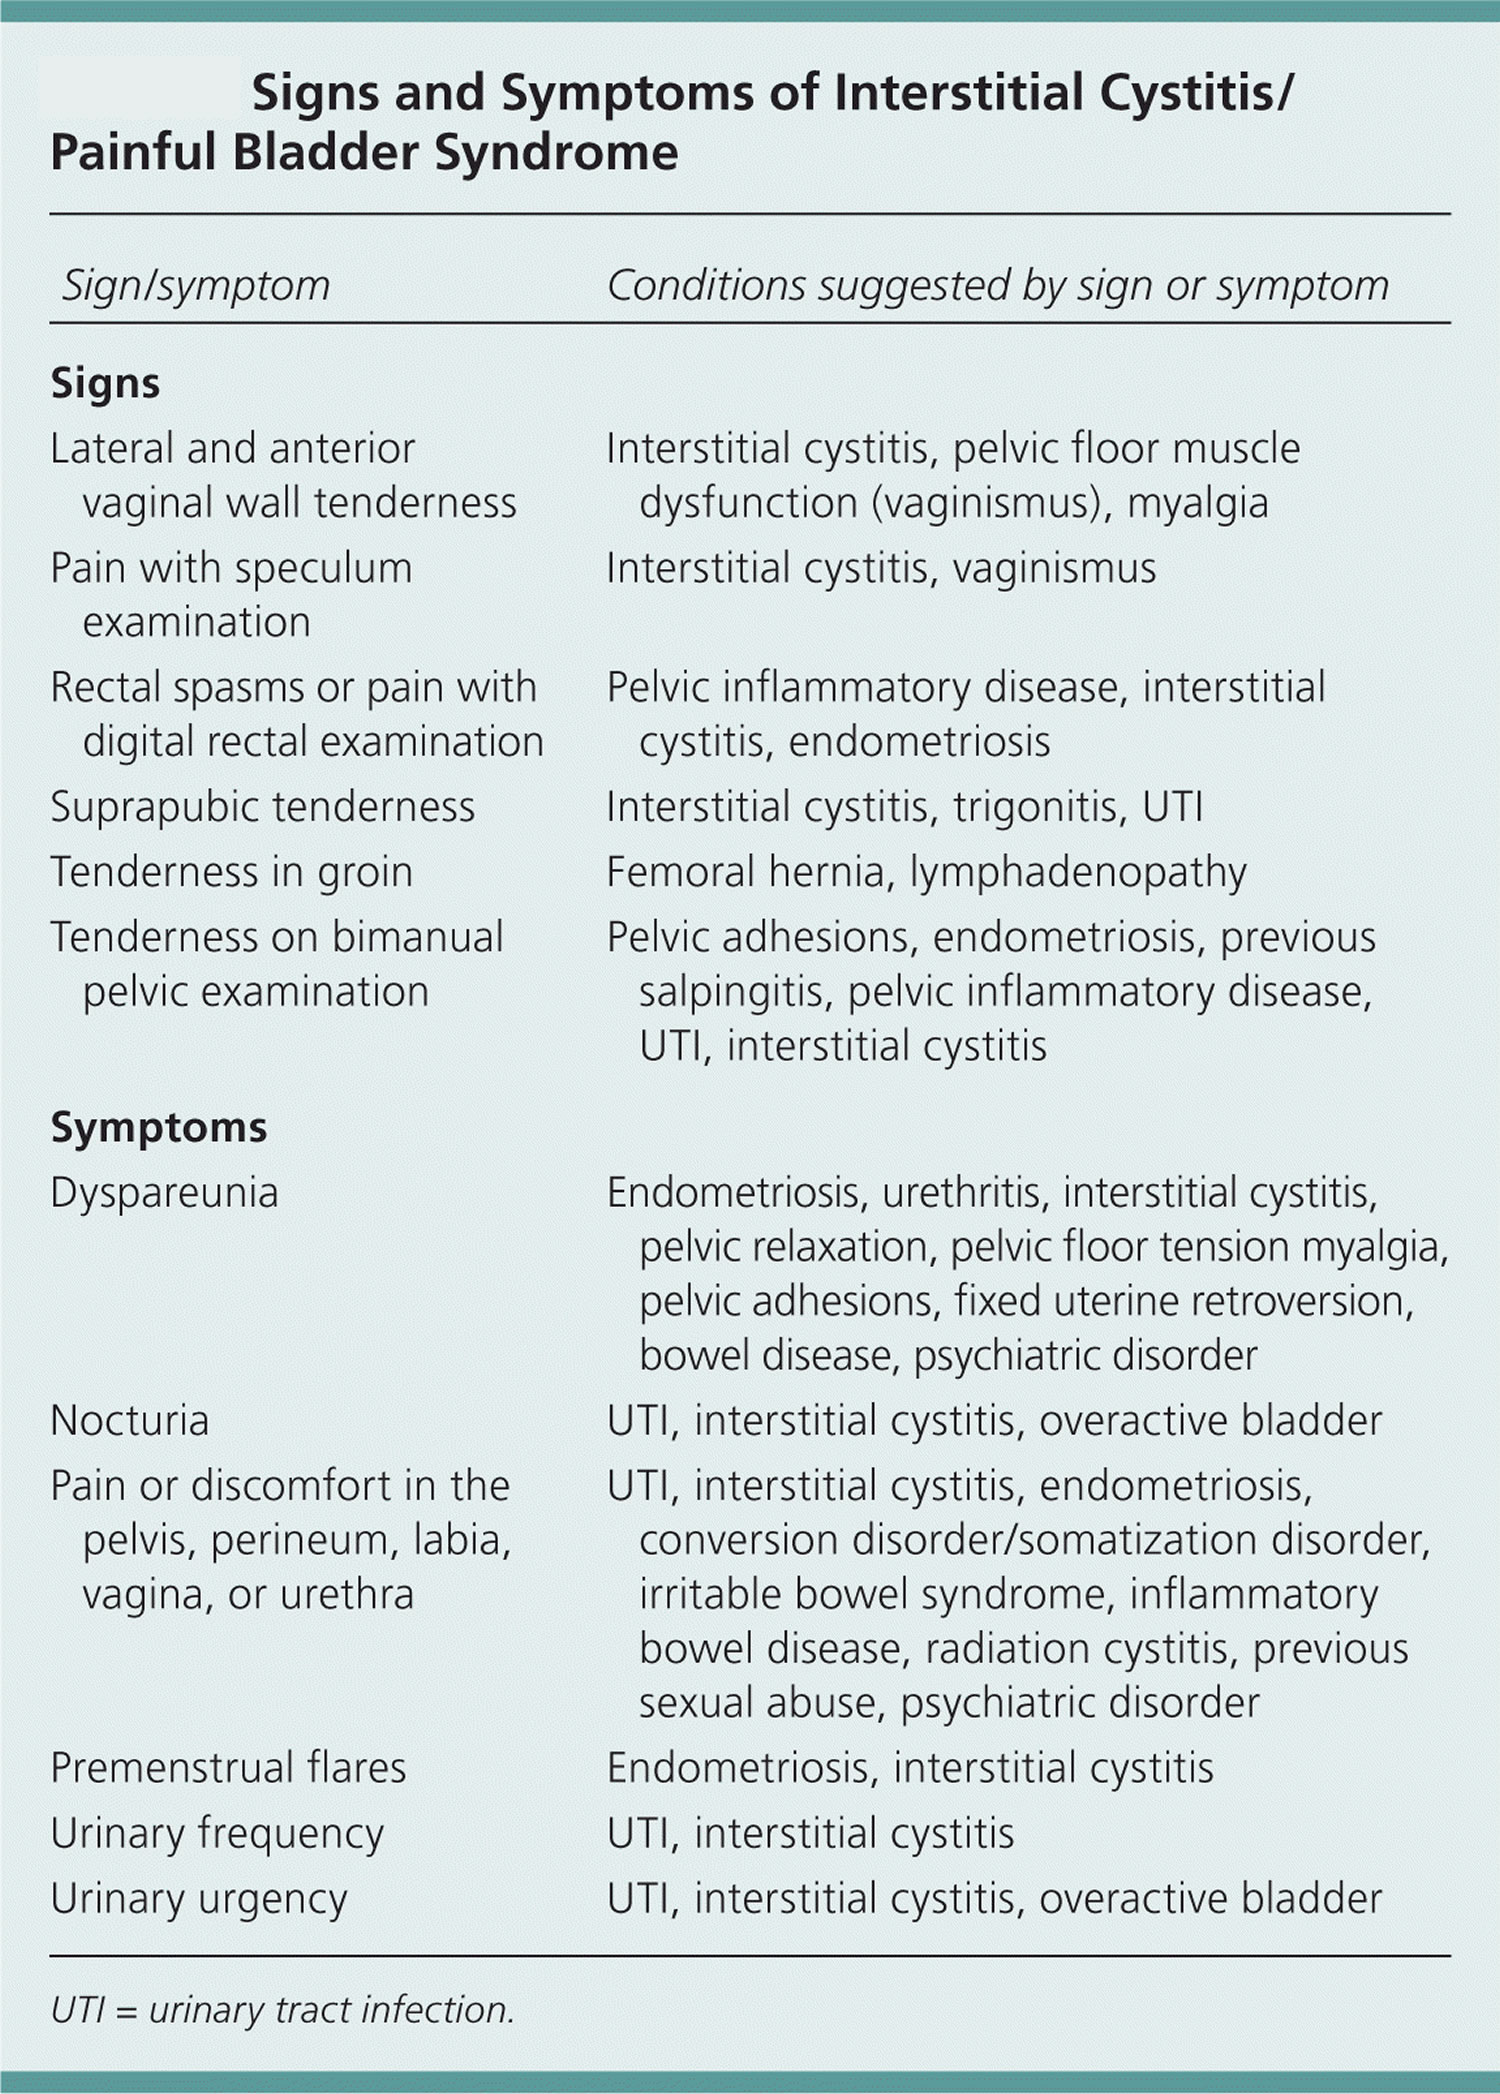 Causes of cystitis